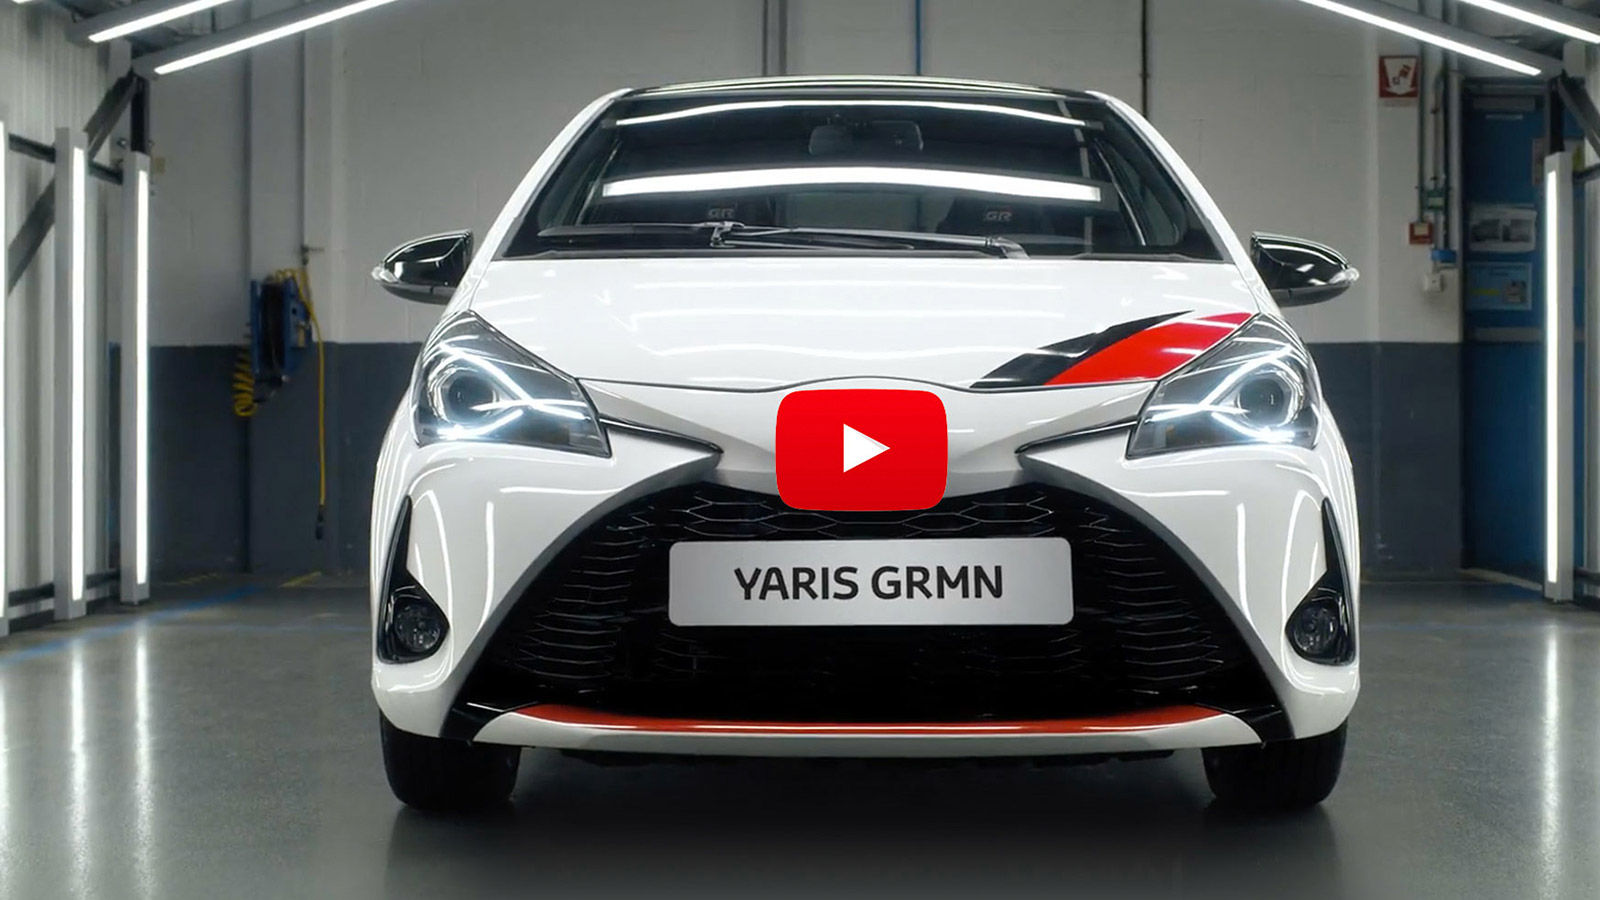 harga toyota new yaris trd 2014 perbedaan grand avanza tipe e dan g grmn limited edition told from a unique perspective we follow the journey of first through our factory forging its race bred body right to test